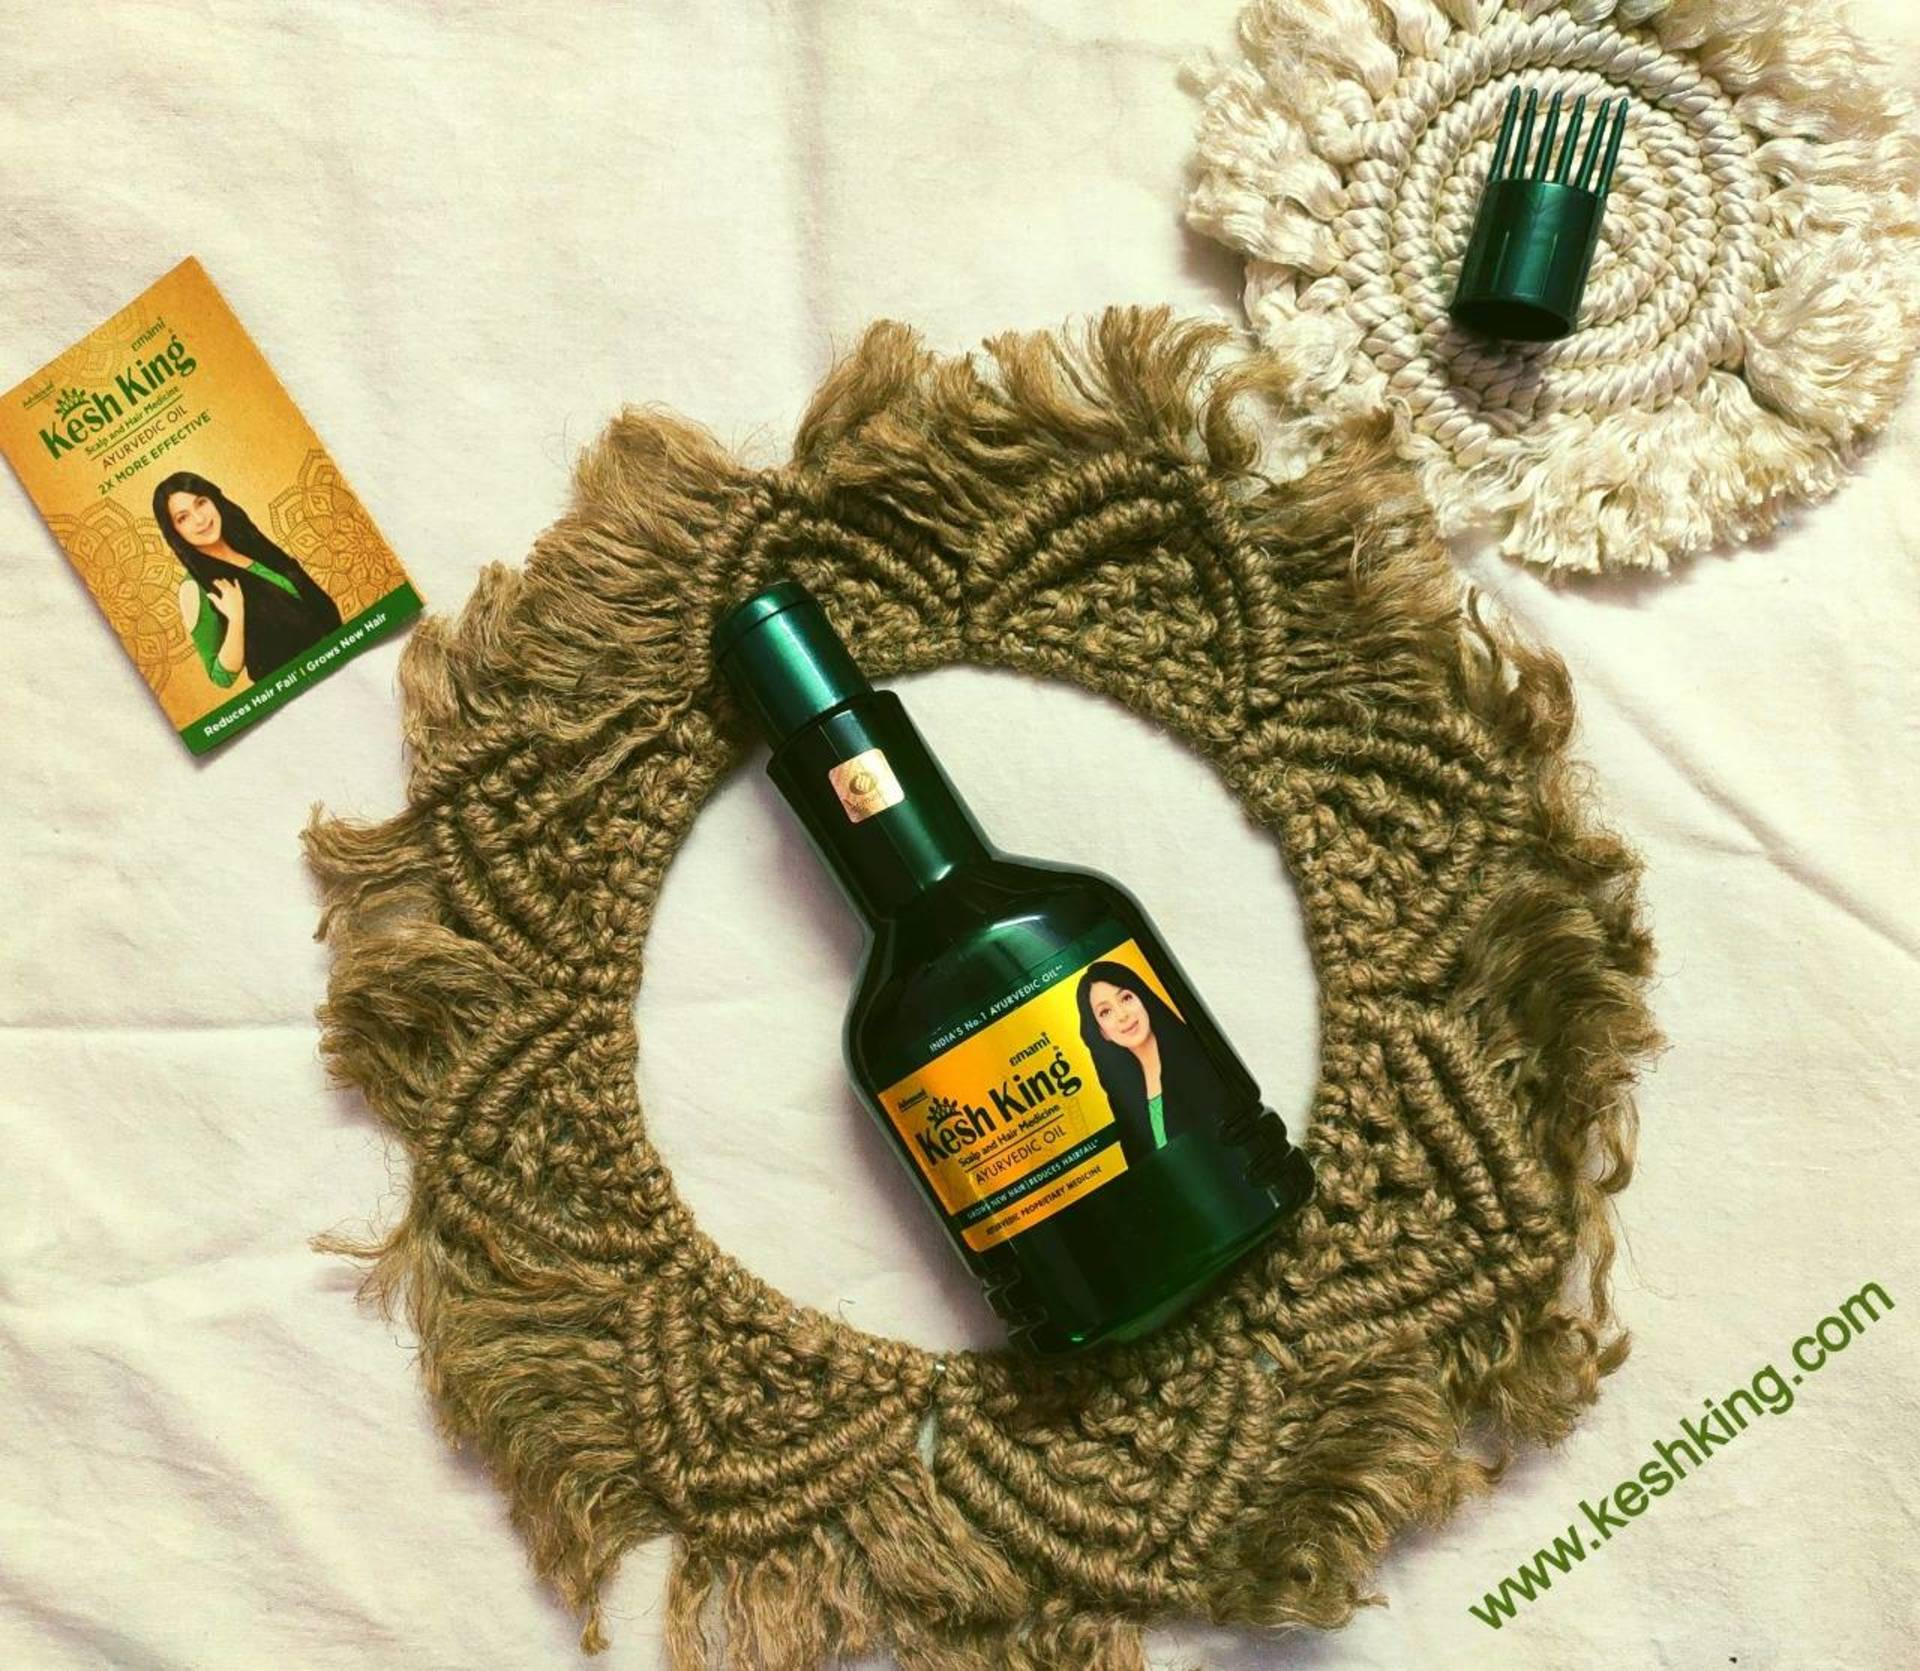 Emami Kesh King Hair Oil Review + Tips to Control Hair fall image